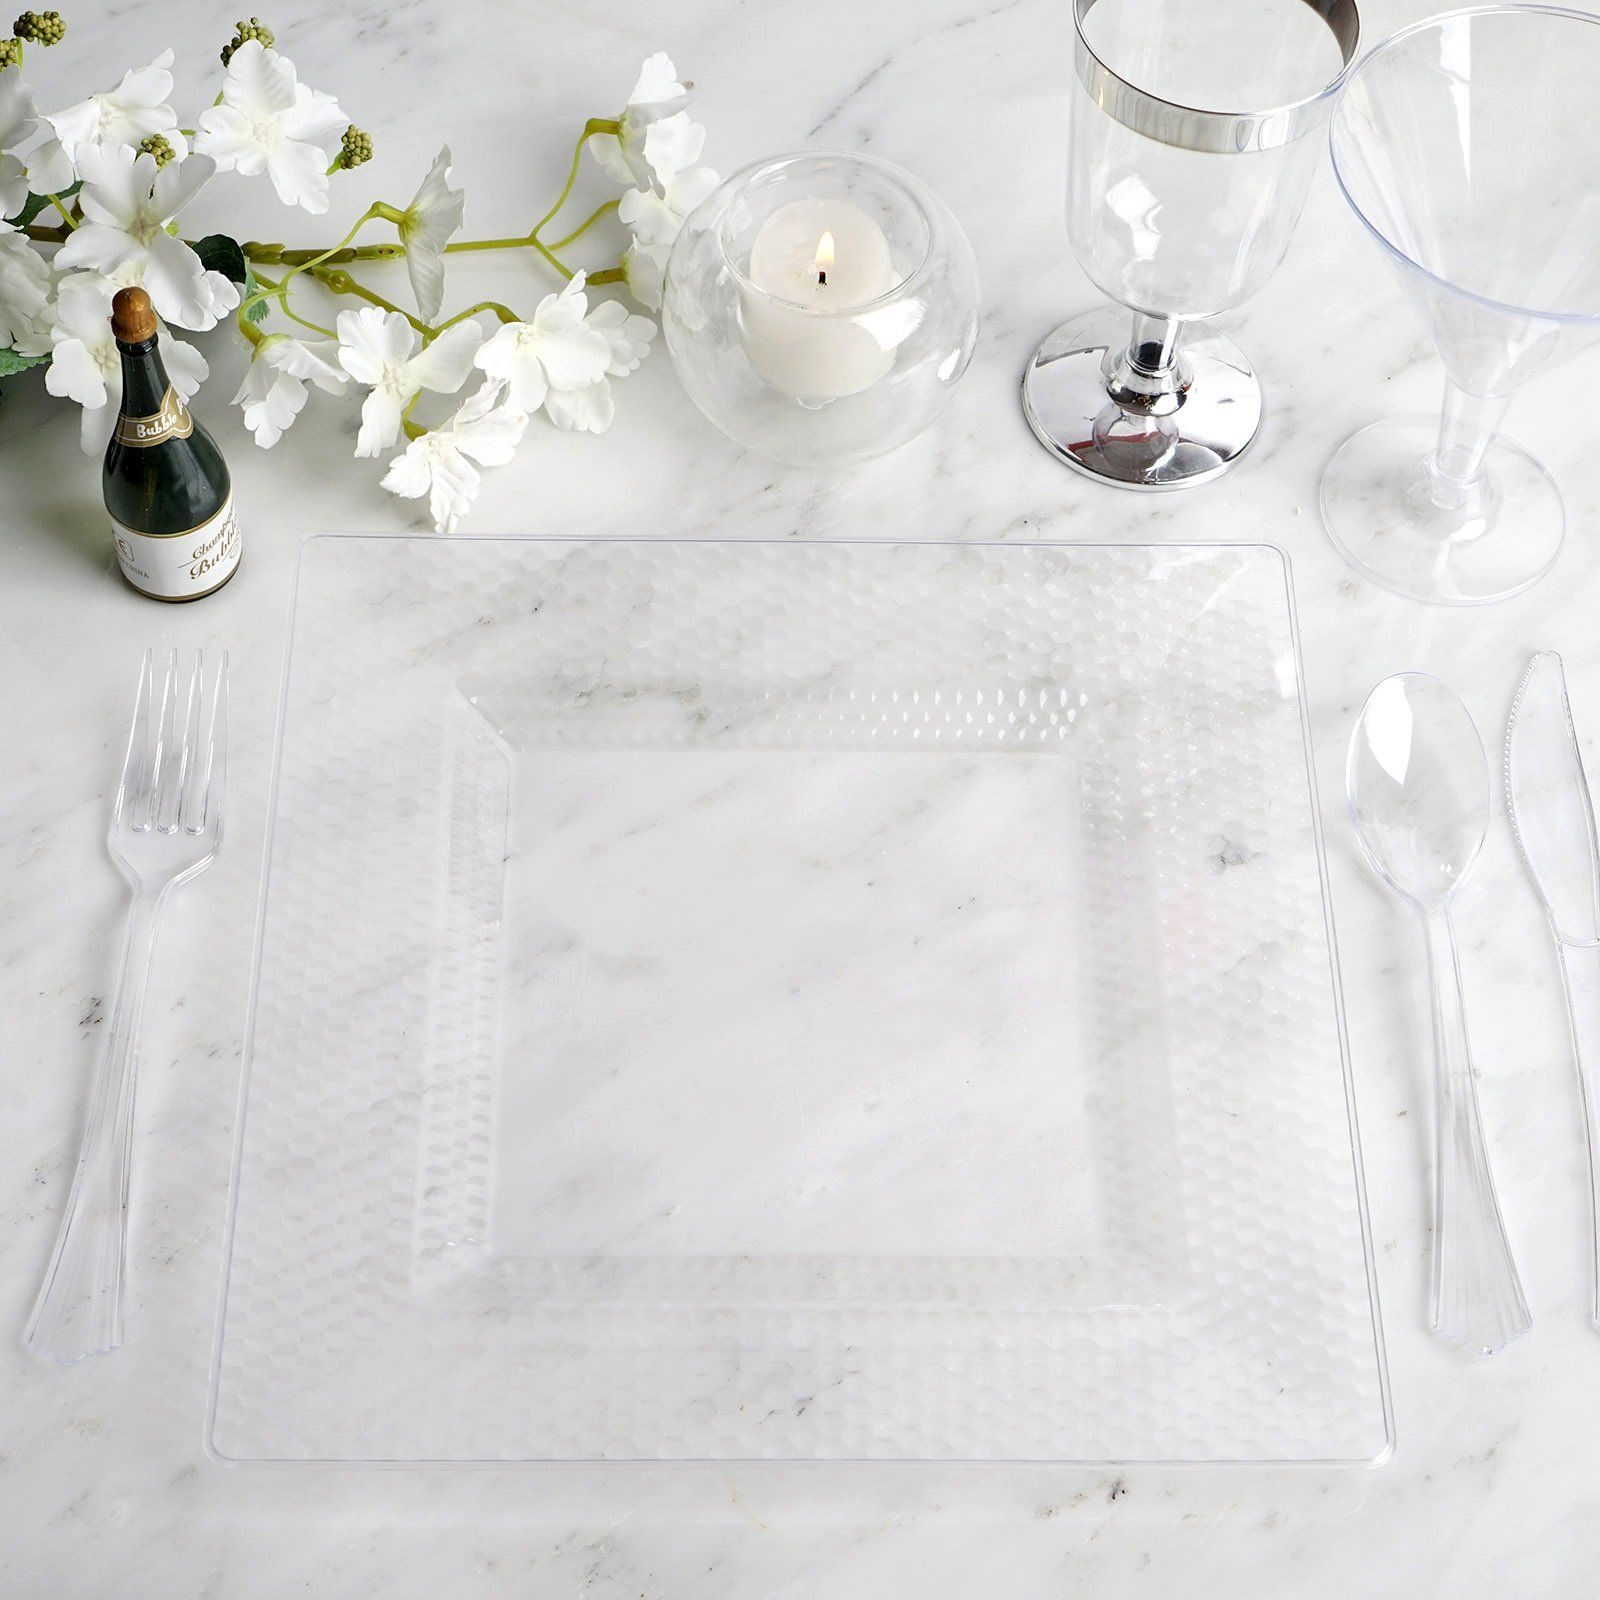 Set Of 10 10 Clear Disposable Plastic Square Dinner Plates With Honeycomb Edge In 2020 Elegant Plastic Dinnerware Clear Plastic Plates Plastic Dinnerware